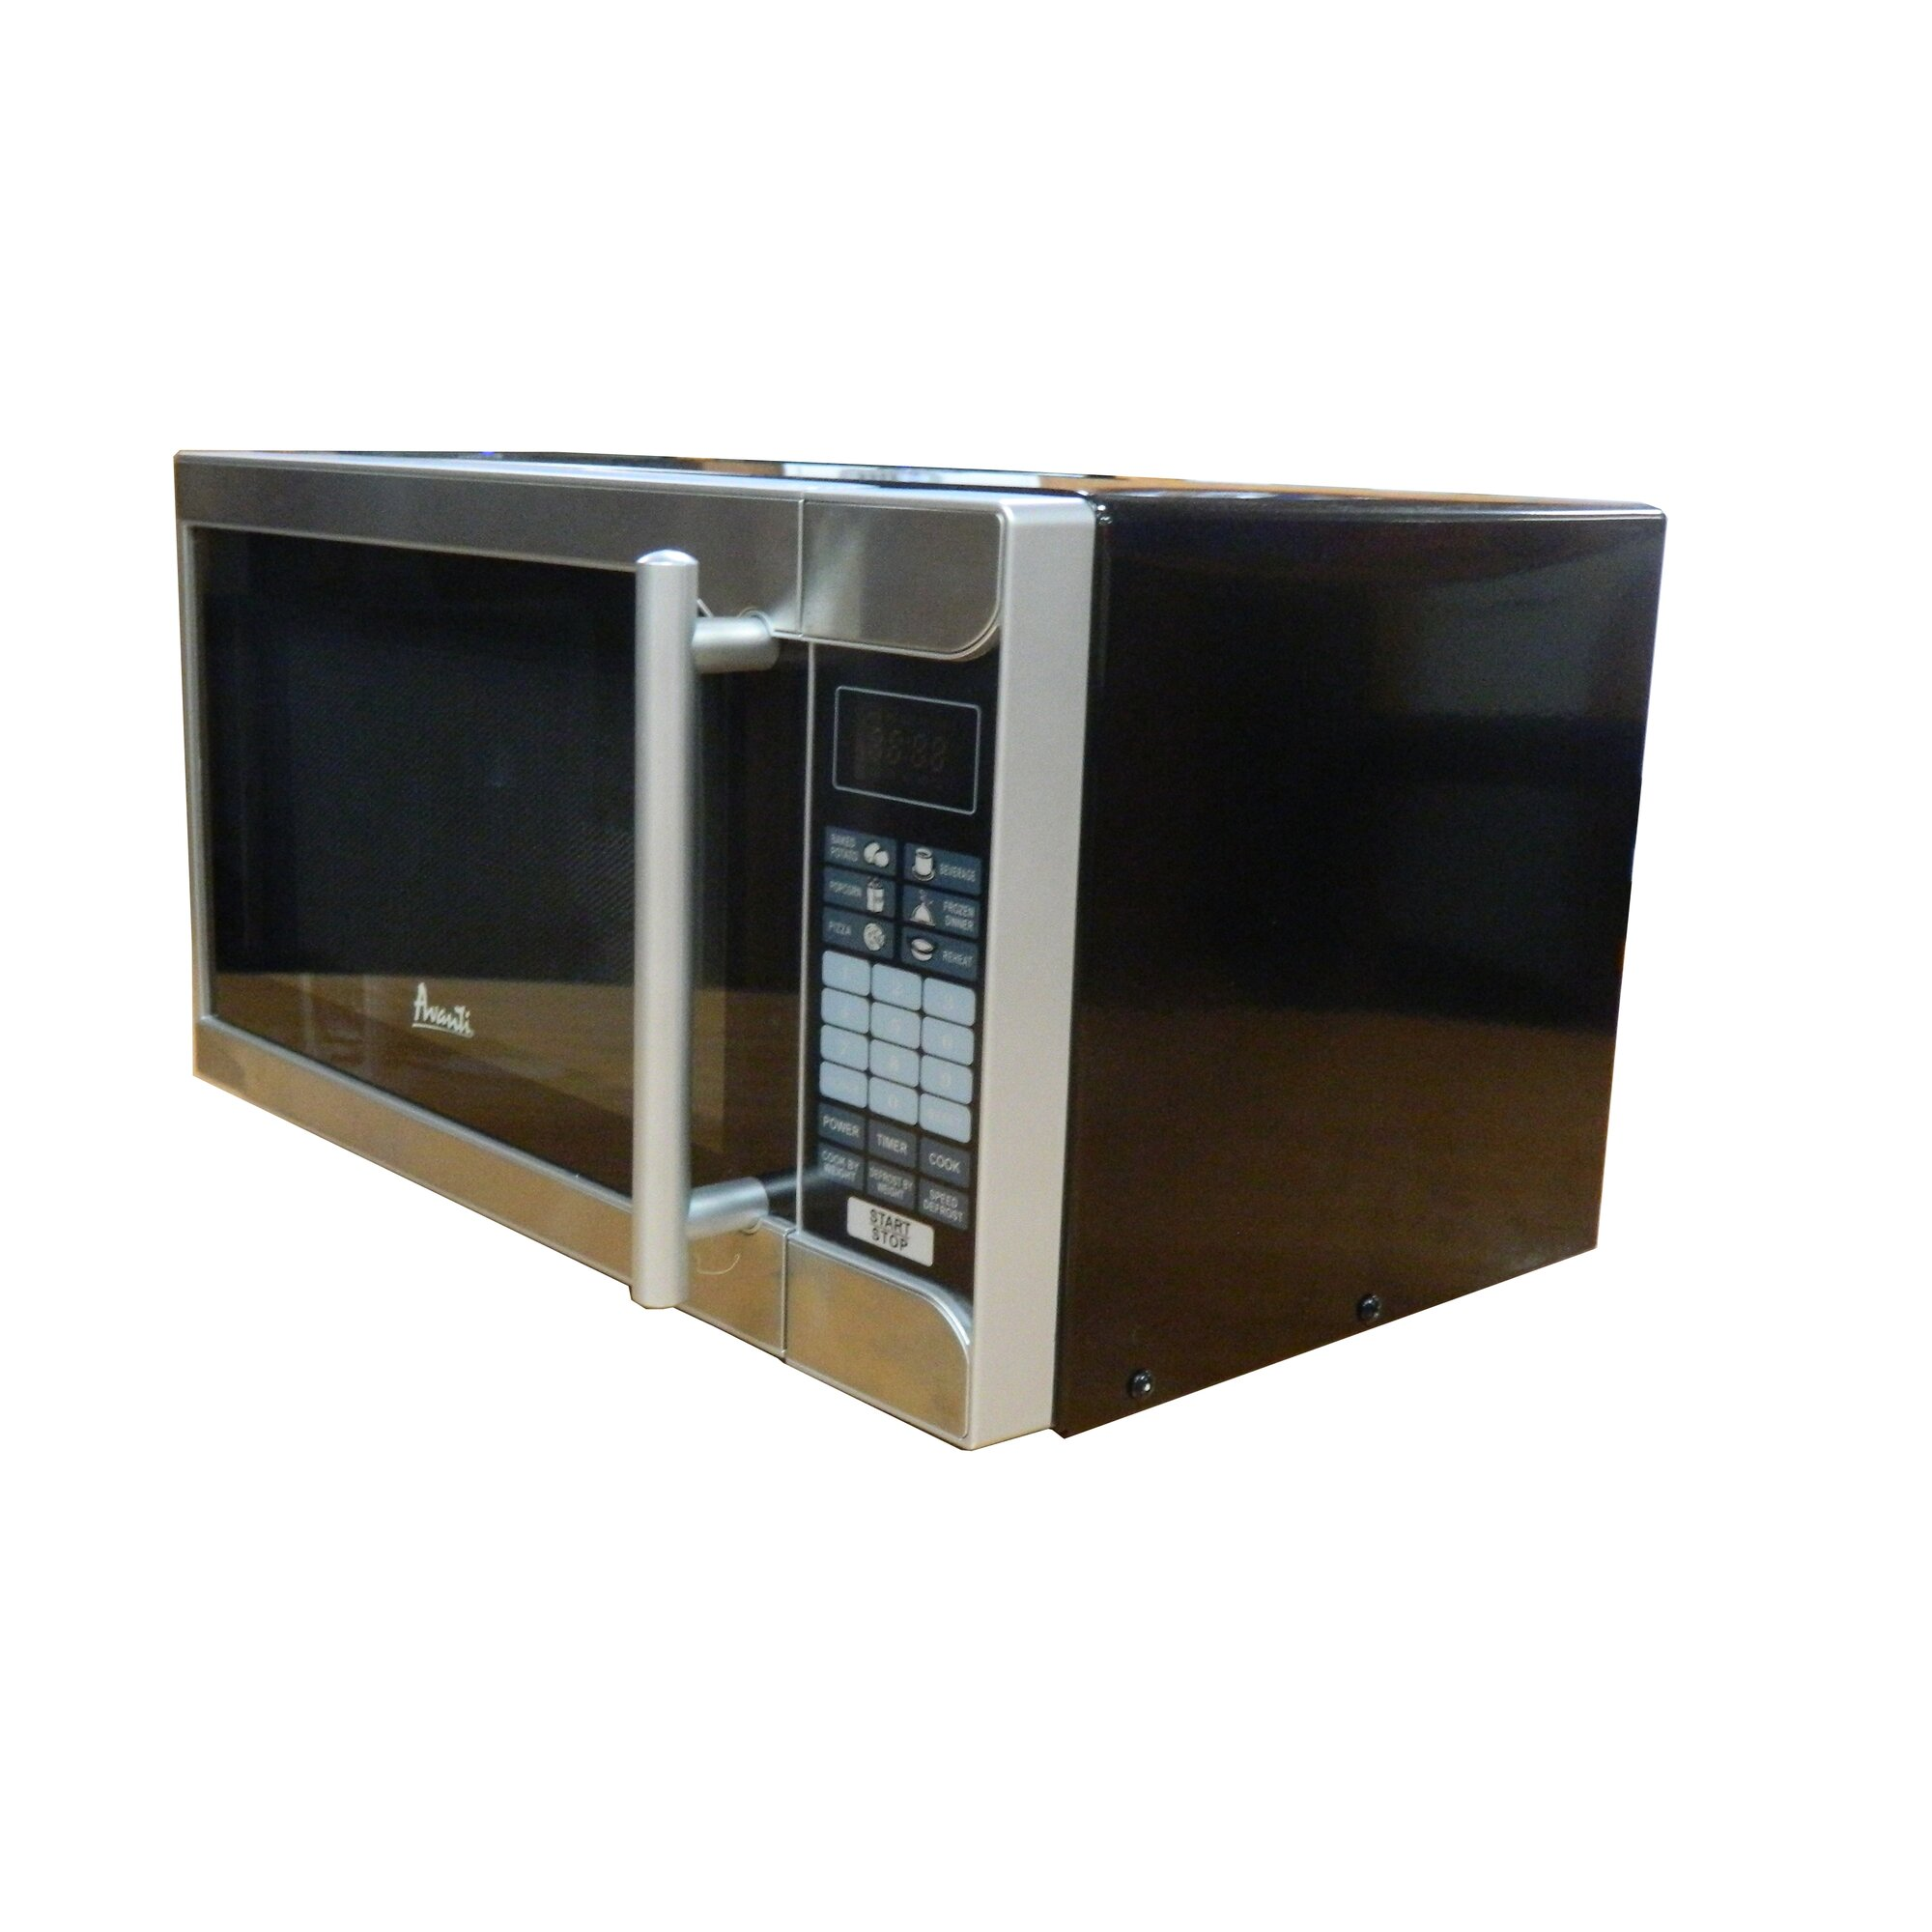 Magic Chef 0 7 Cu Ft Countertop Microwave Bestmicrowave